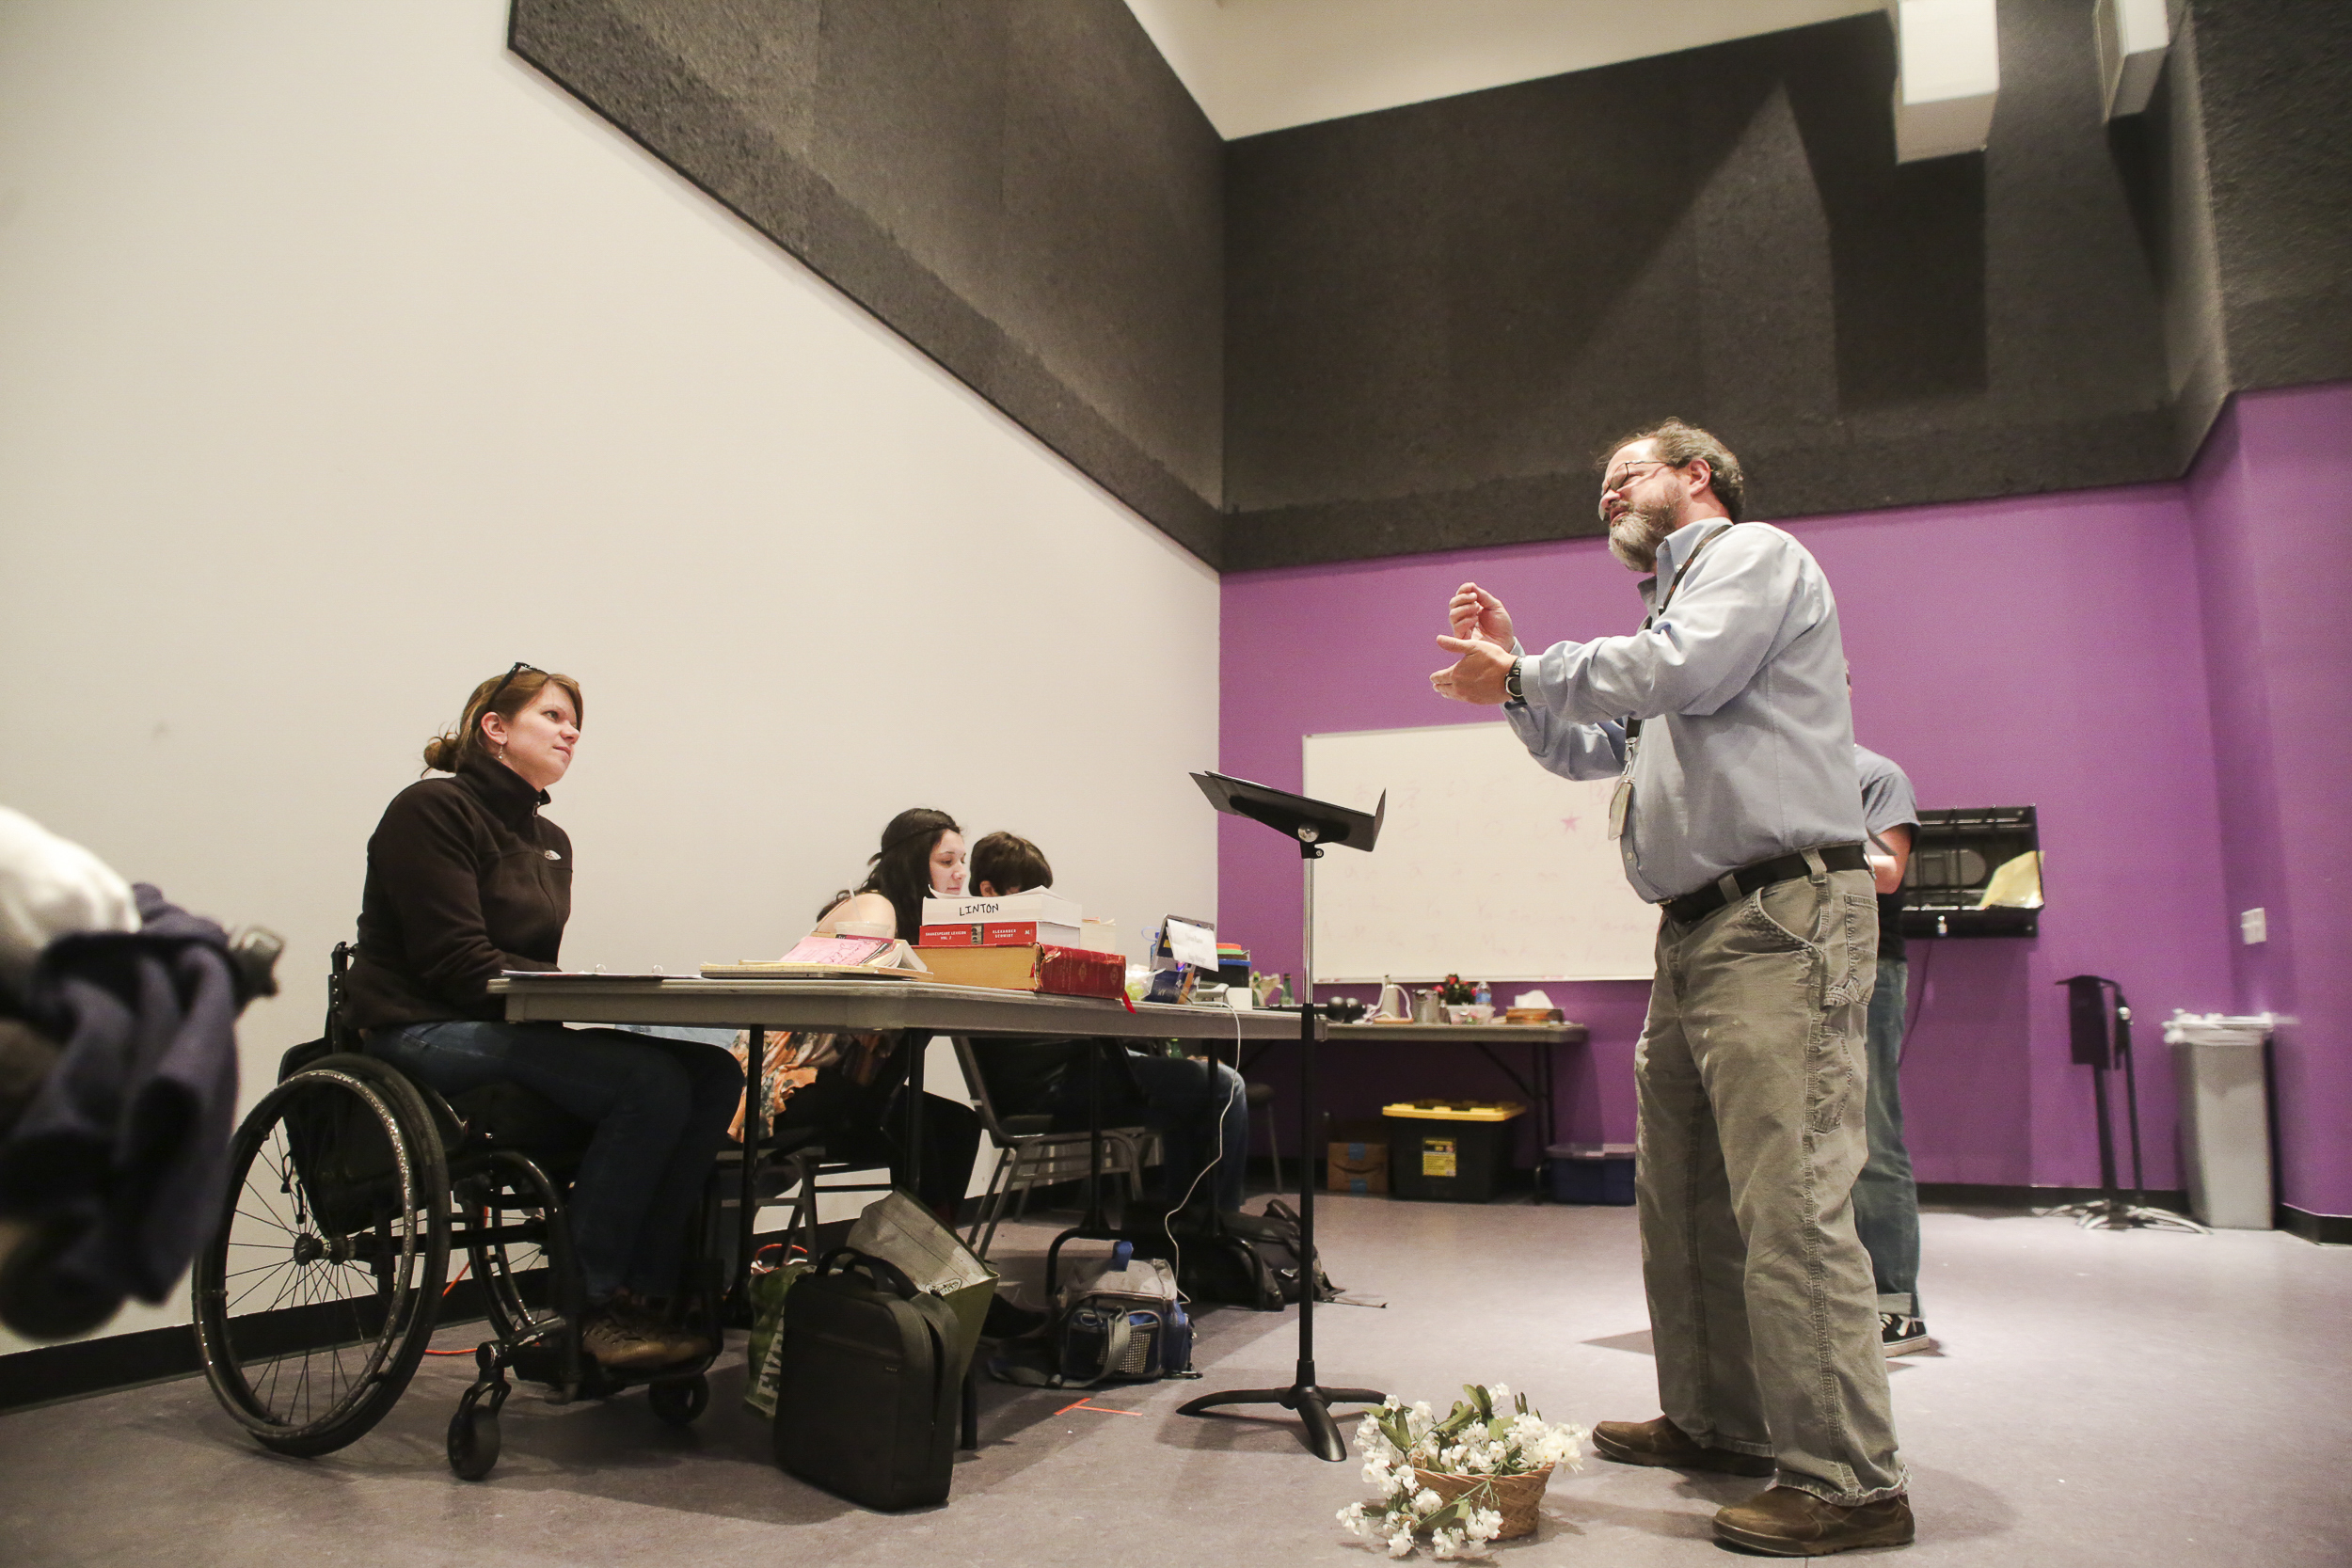 Kevin Pettit, 50, recites his lines during a rehearsal for the play of Romeo and Juliet, as Regan Linton, the director of the play, gives feedback to him at the Denver Arts Center on April 5, 2018. Pettit is an active participant in the Phamaly Theater group, which is a theater production company with people whom all have different kinds of disabilities.